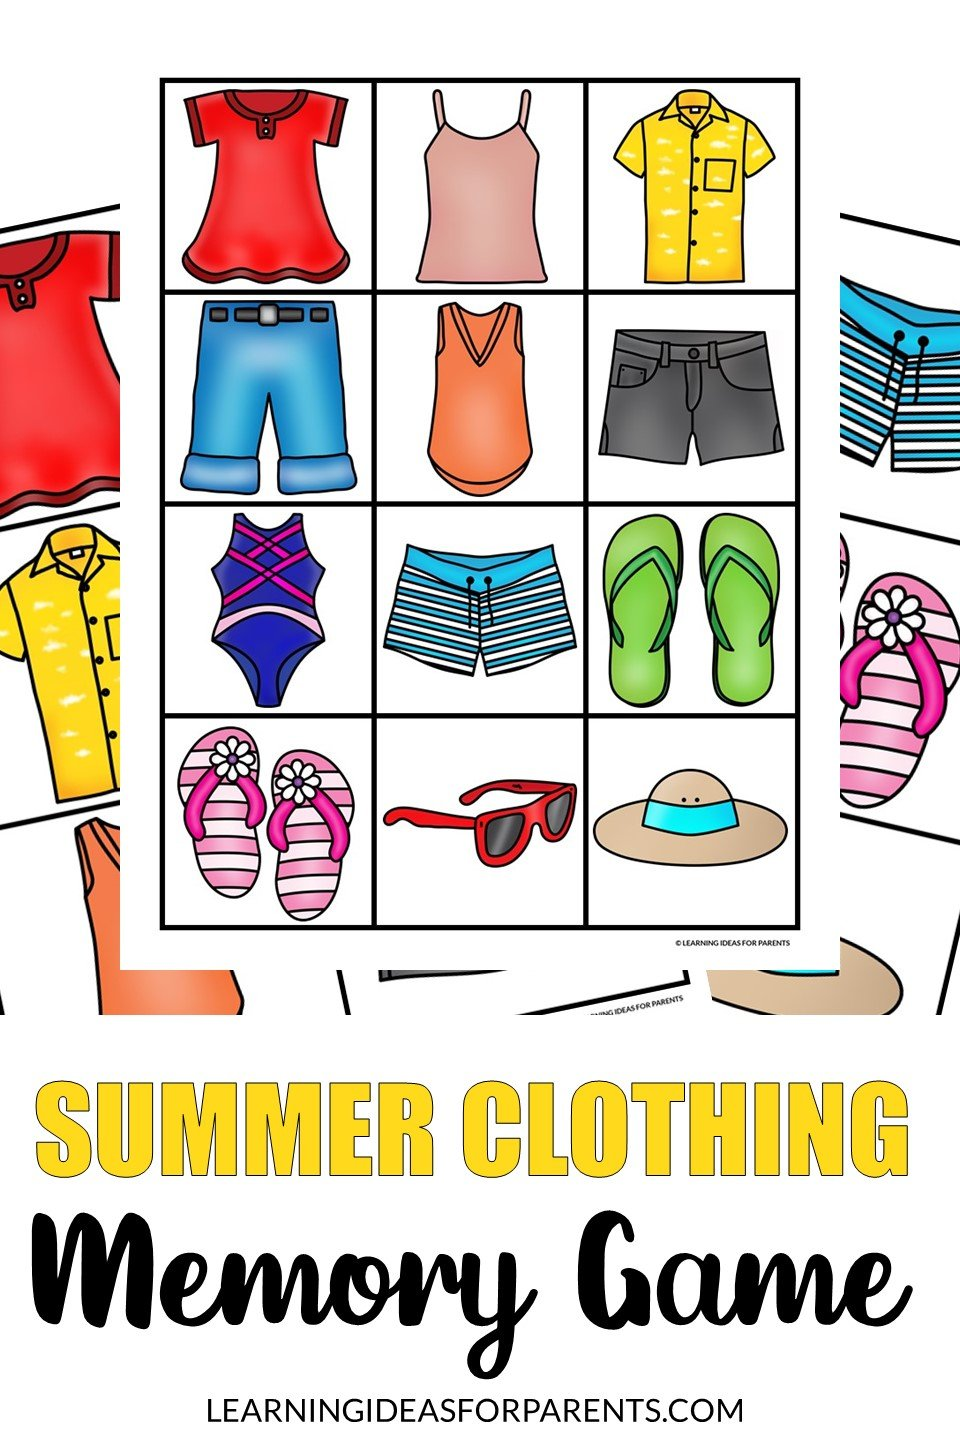 Free printable summer clothing memory game for kids.